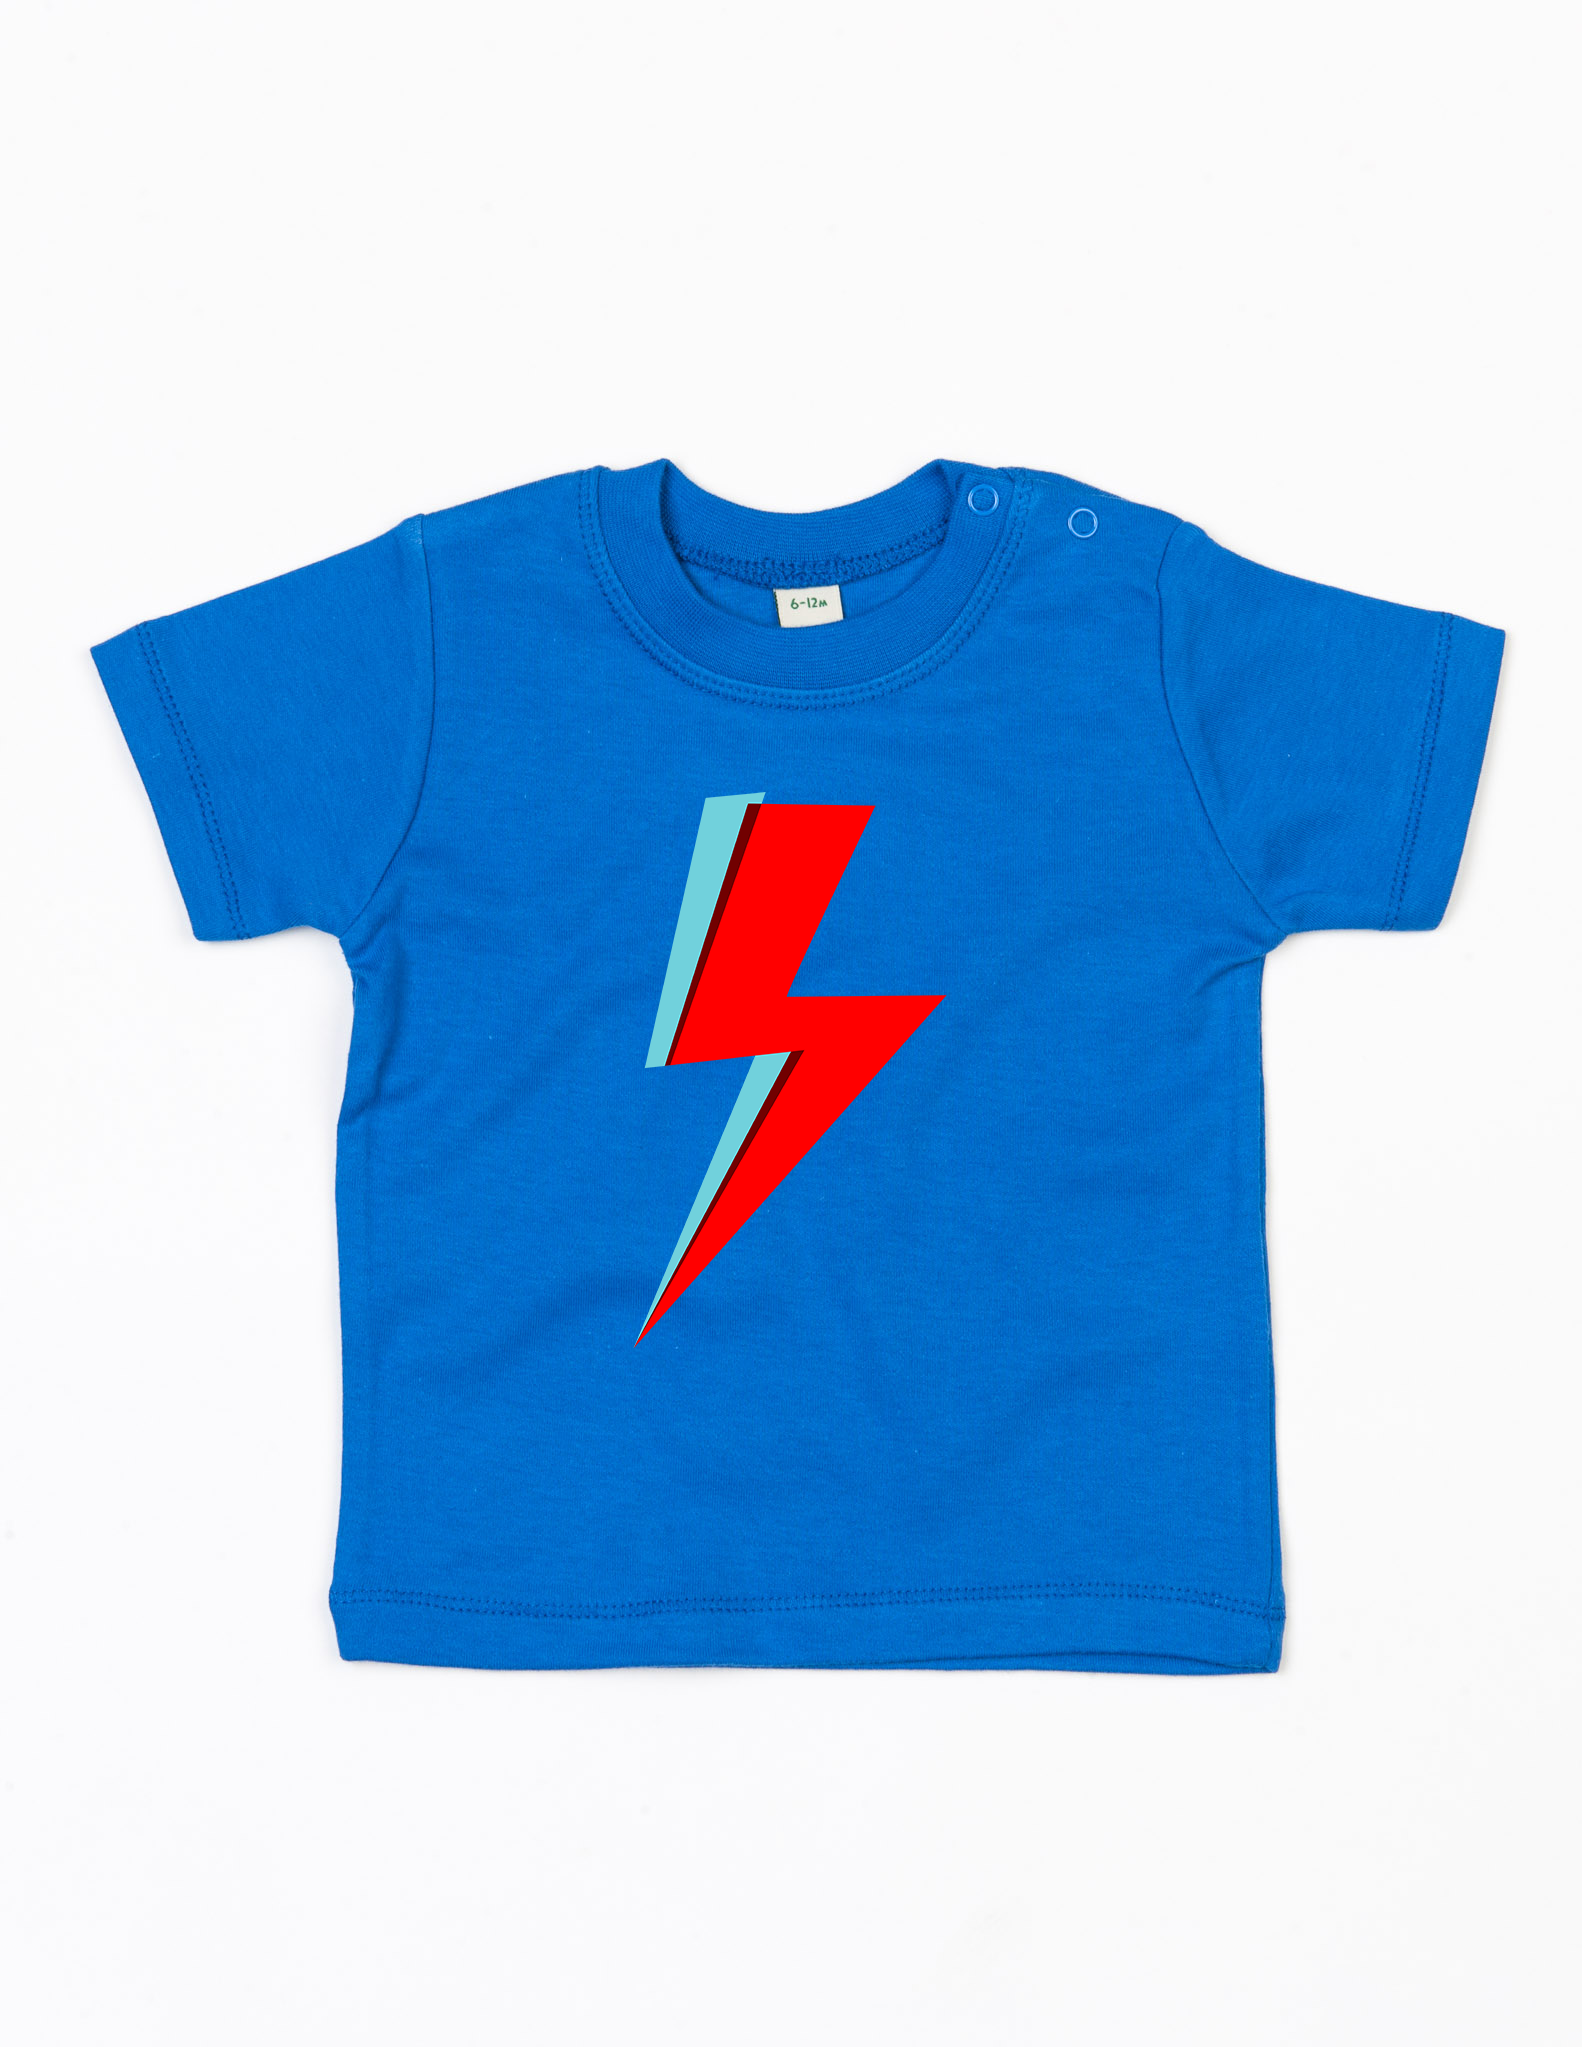 'Bowie Bolt' Organic Baby T